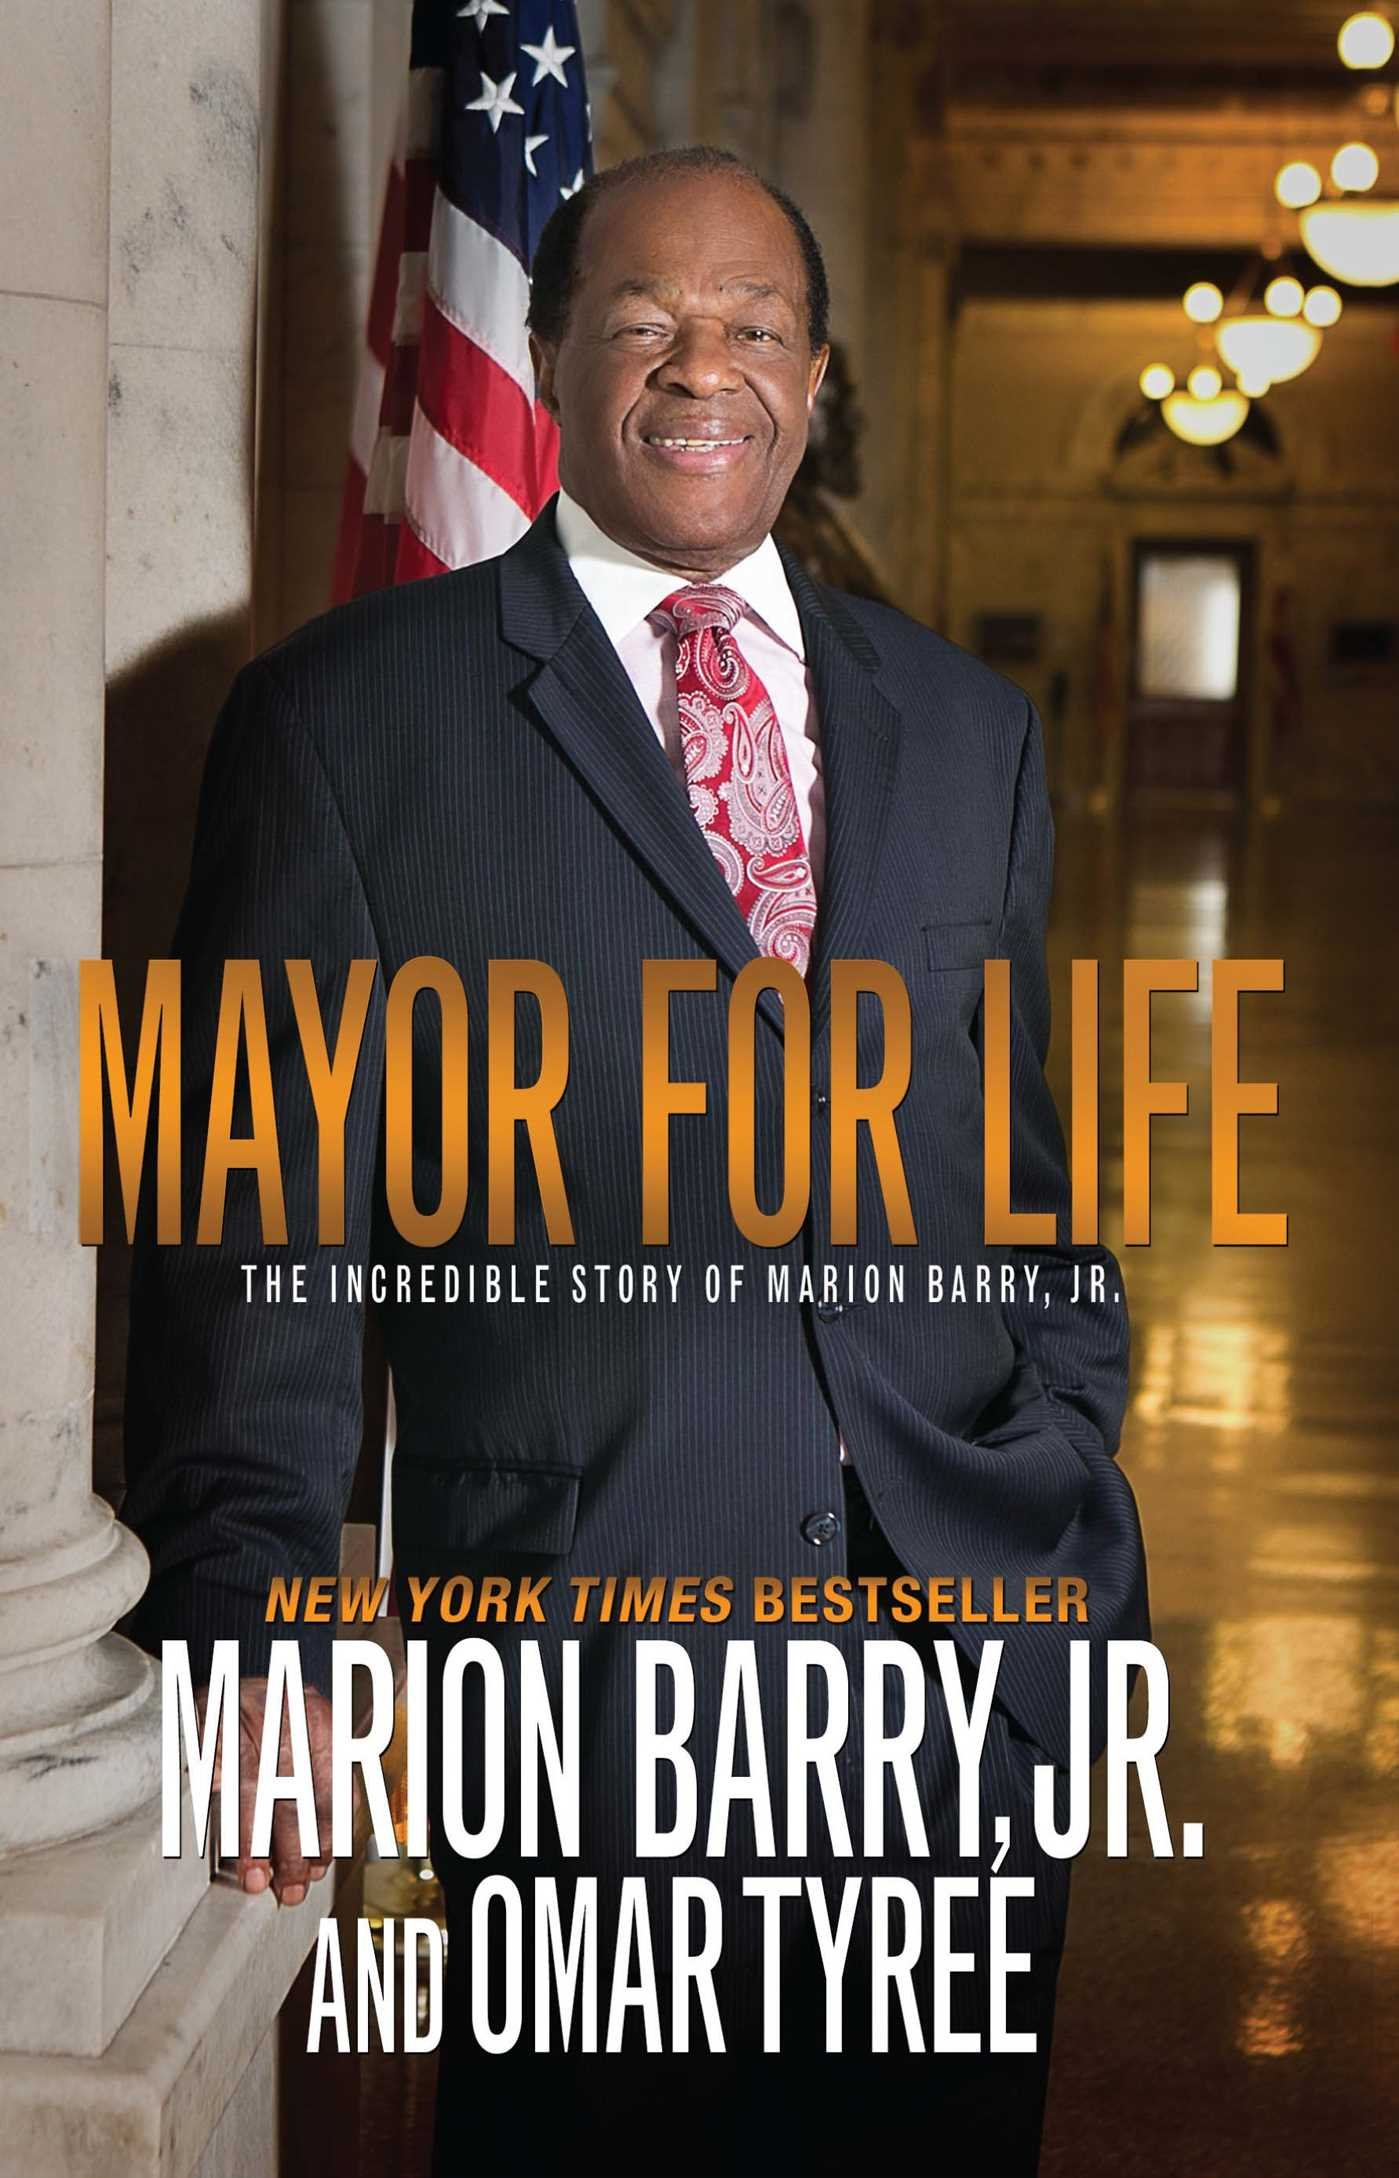 mayor for life the incredible story of marion barry jr marion